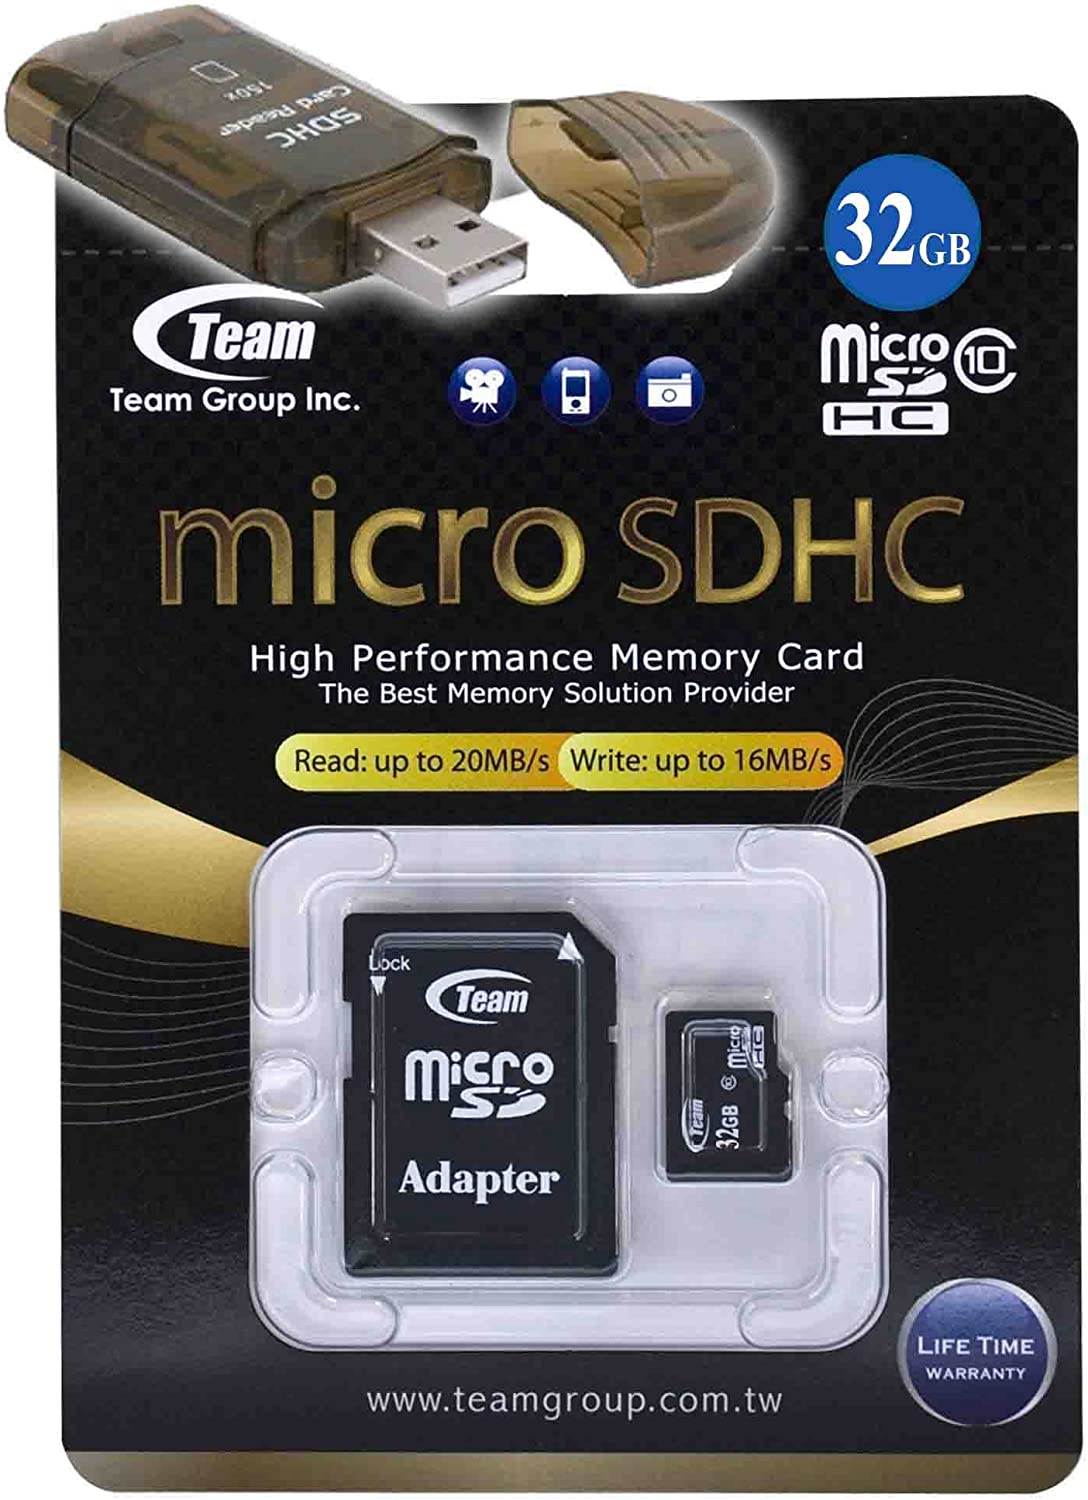 Comes with. Perfect Fit For Motorola DROID 2 Global A free Hot Deals 4 Less High Speed all in one Card Reader is included 32GB MicroSDHC Class 10 High Speed Memory Card